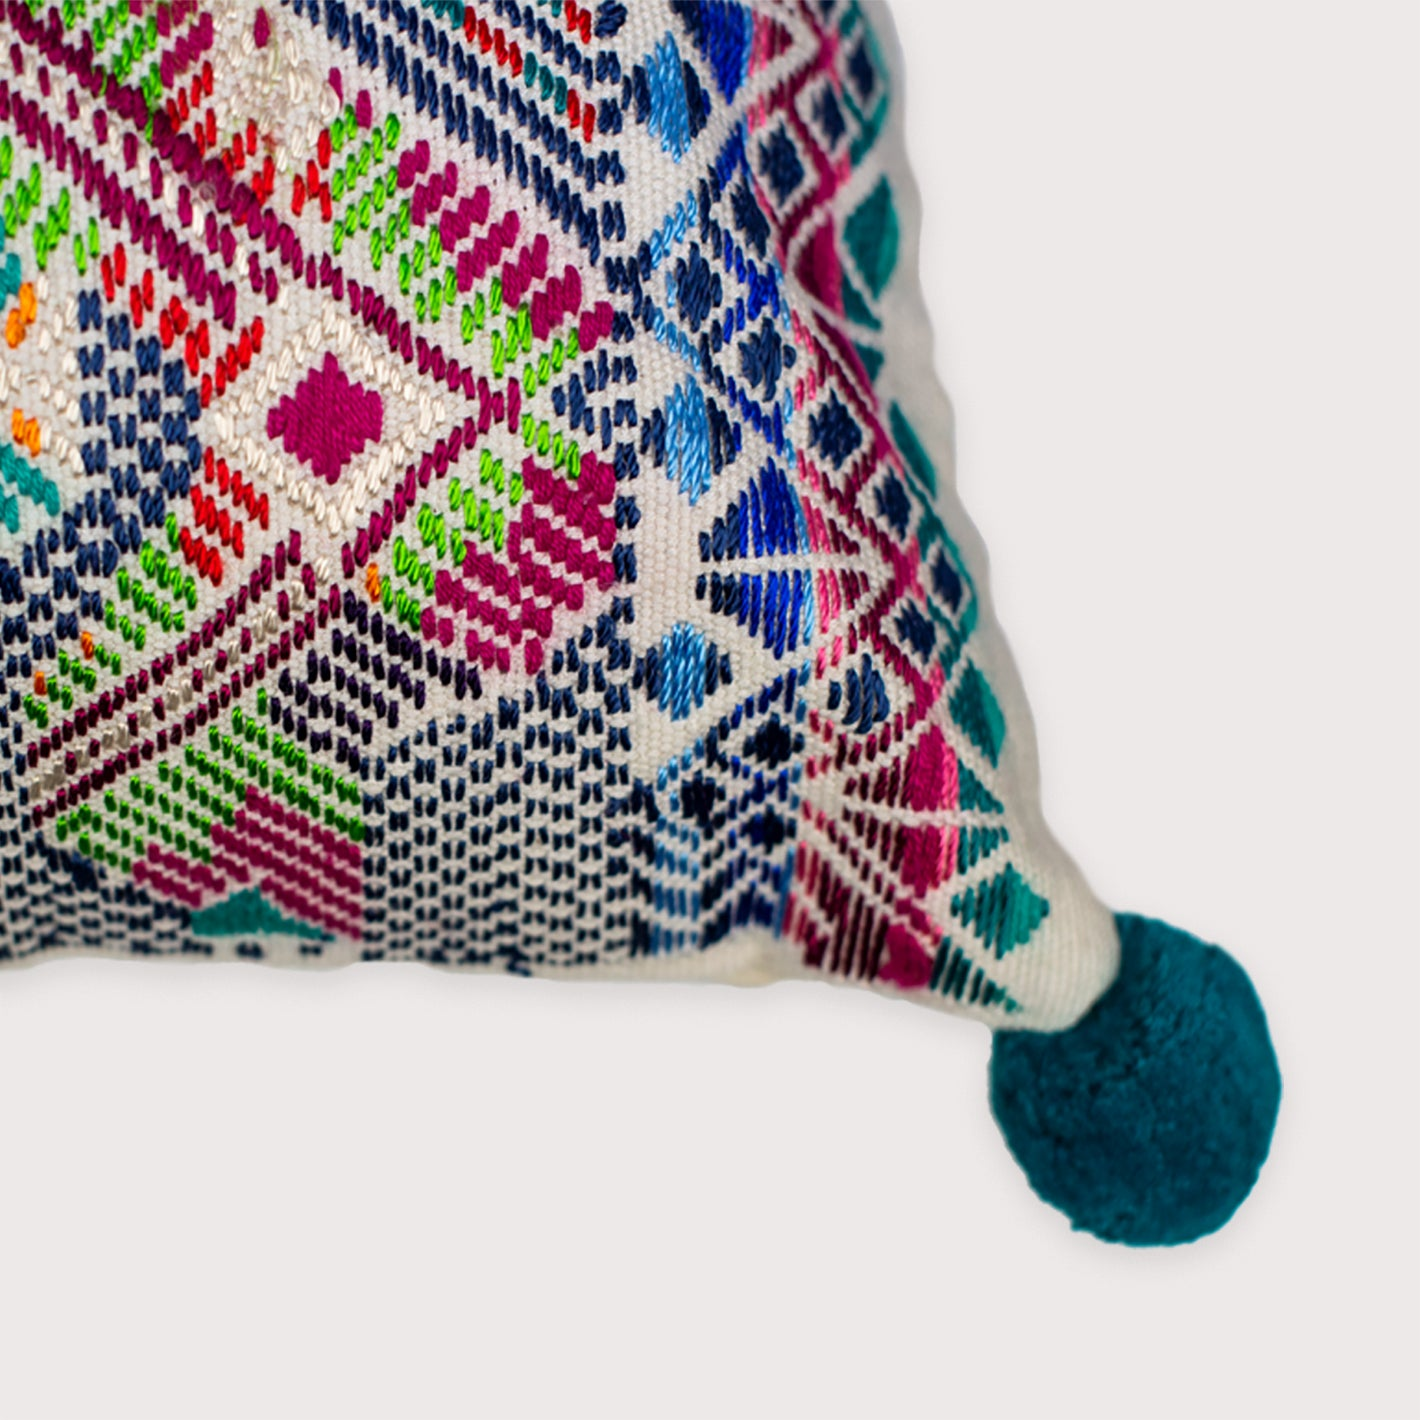 B'atz' - turquoise Pixan Pillow - White Label Project